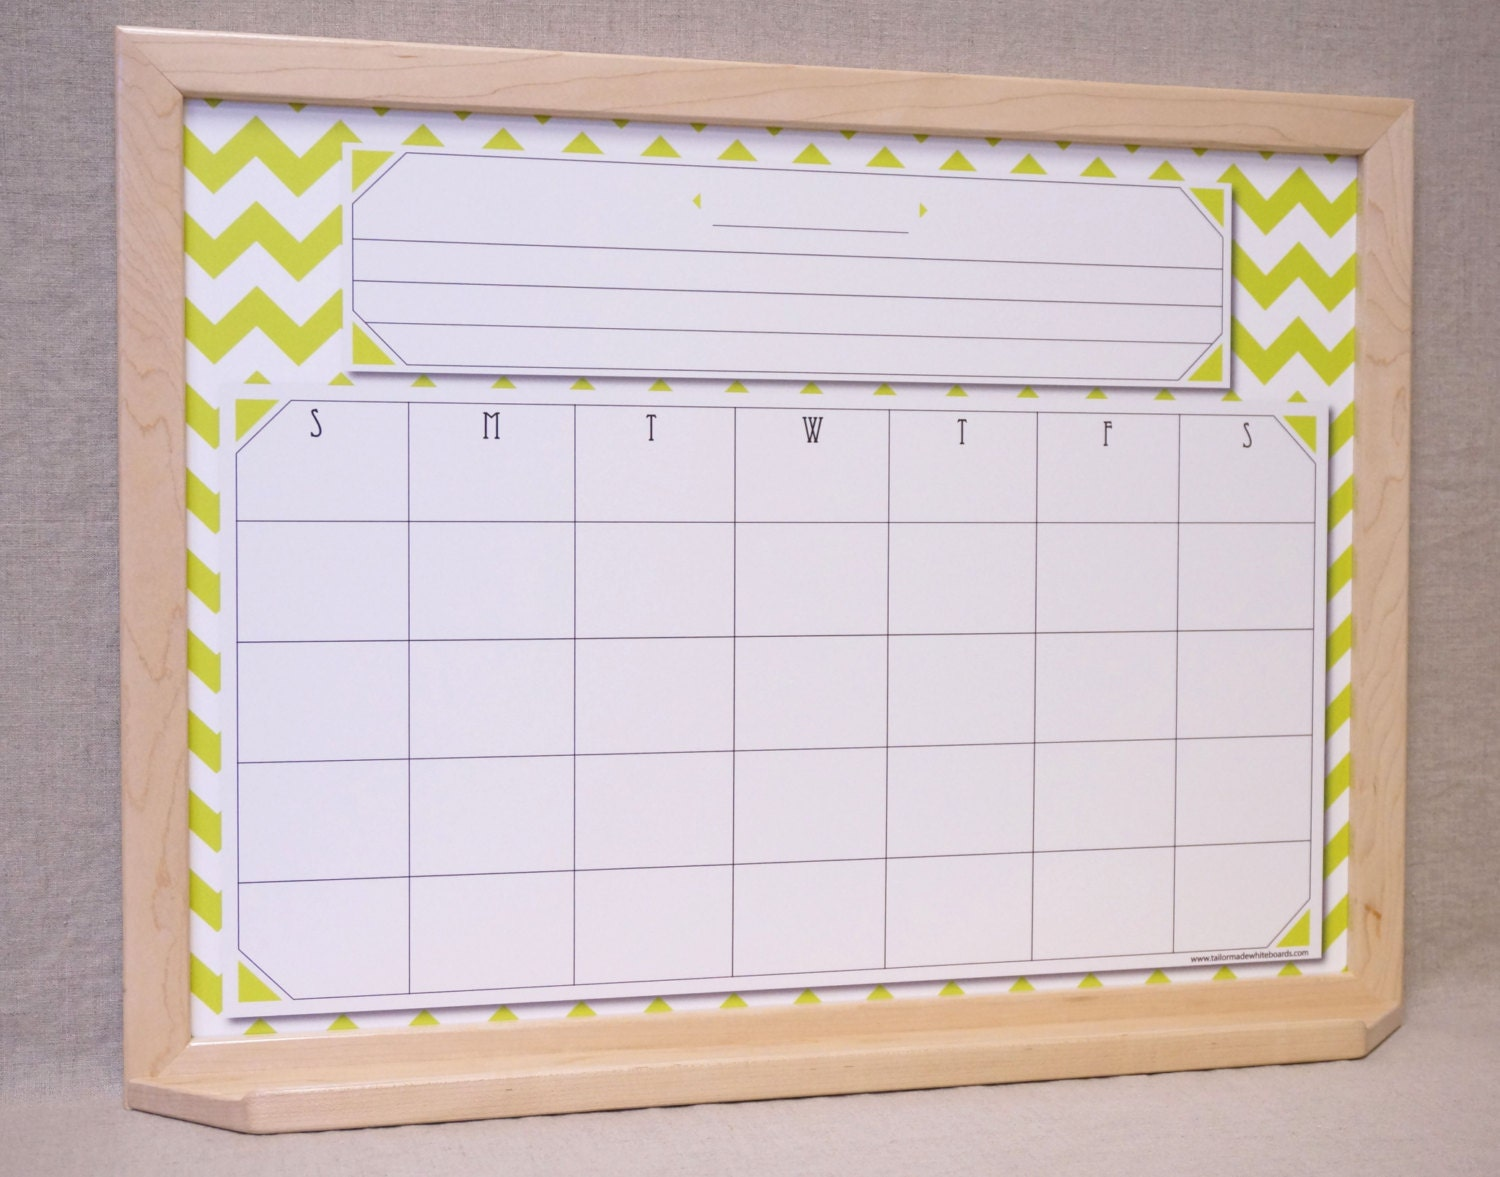 framed whiteboard calendar chartreusewhite chevron framed calendar dry erase board family command center family organizer